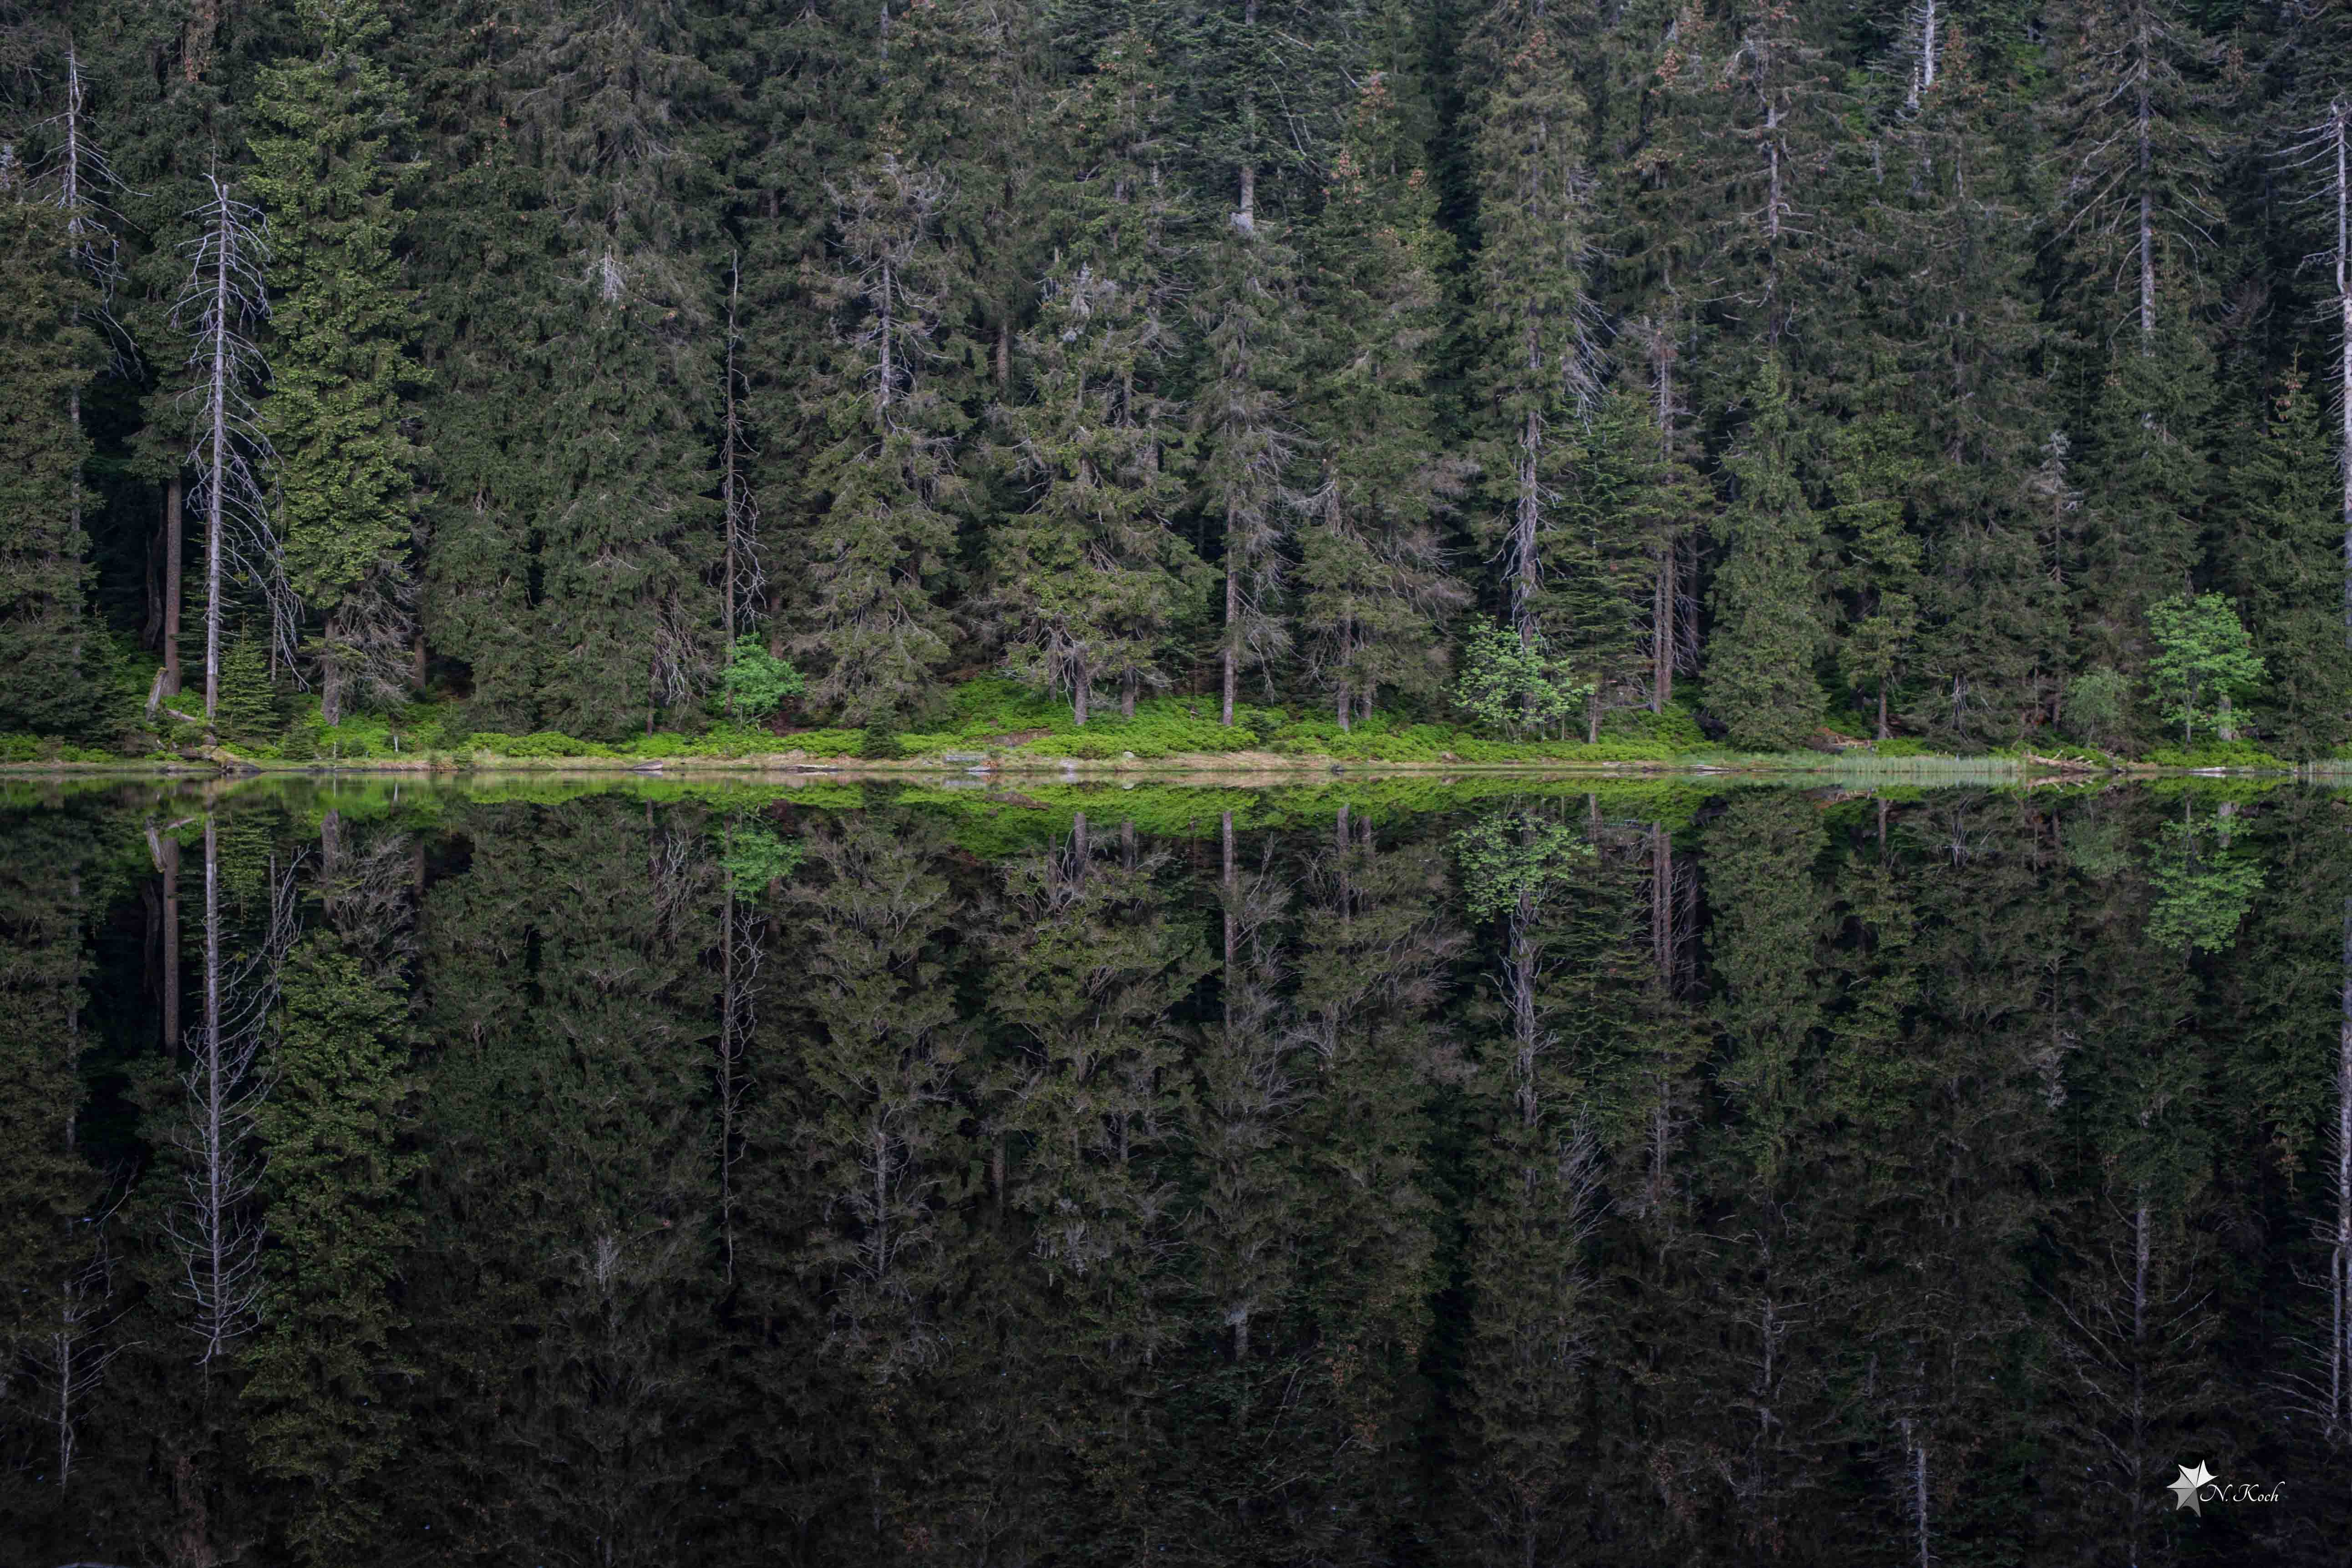 2015, Blackforest | The Wildsee like a mirror